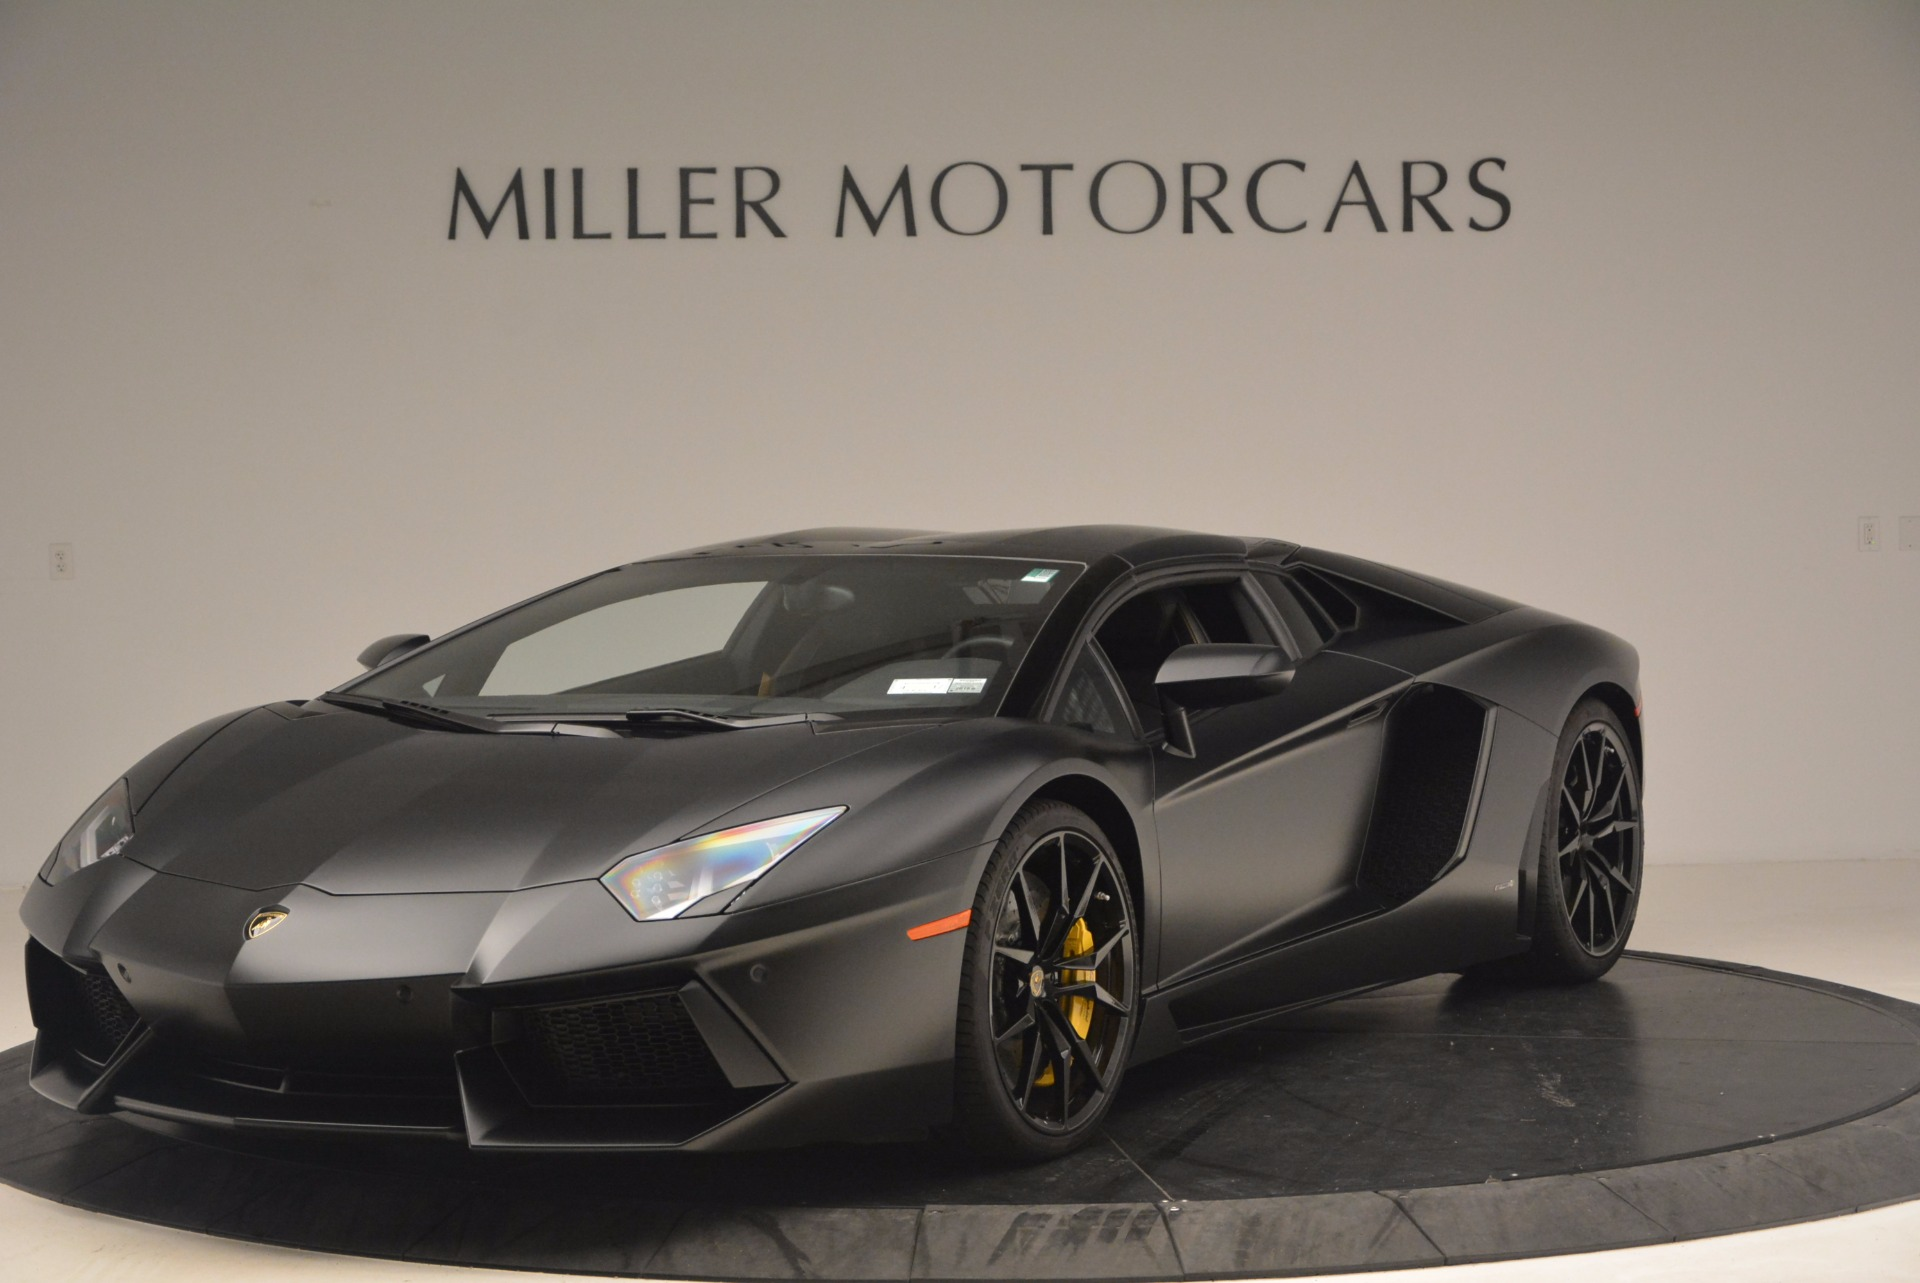 used lamborghini prices million this drive buy low sheetmetal mileage for centenario the